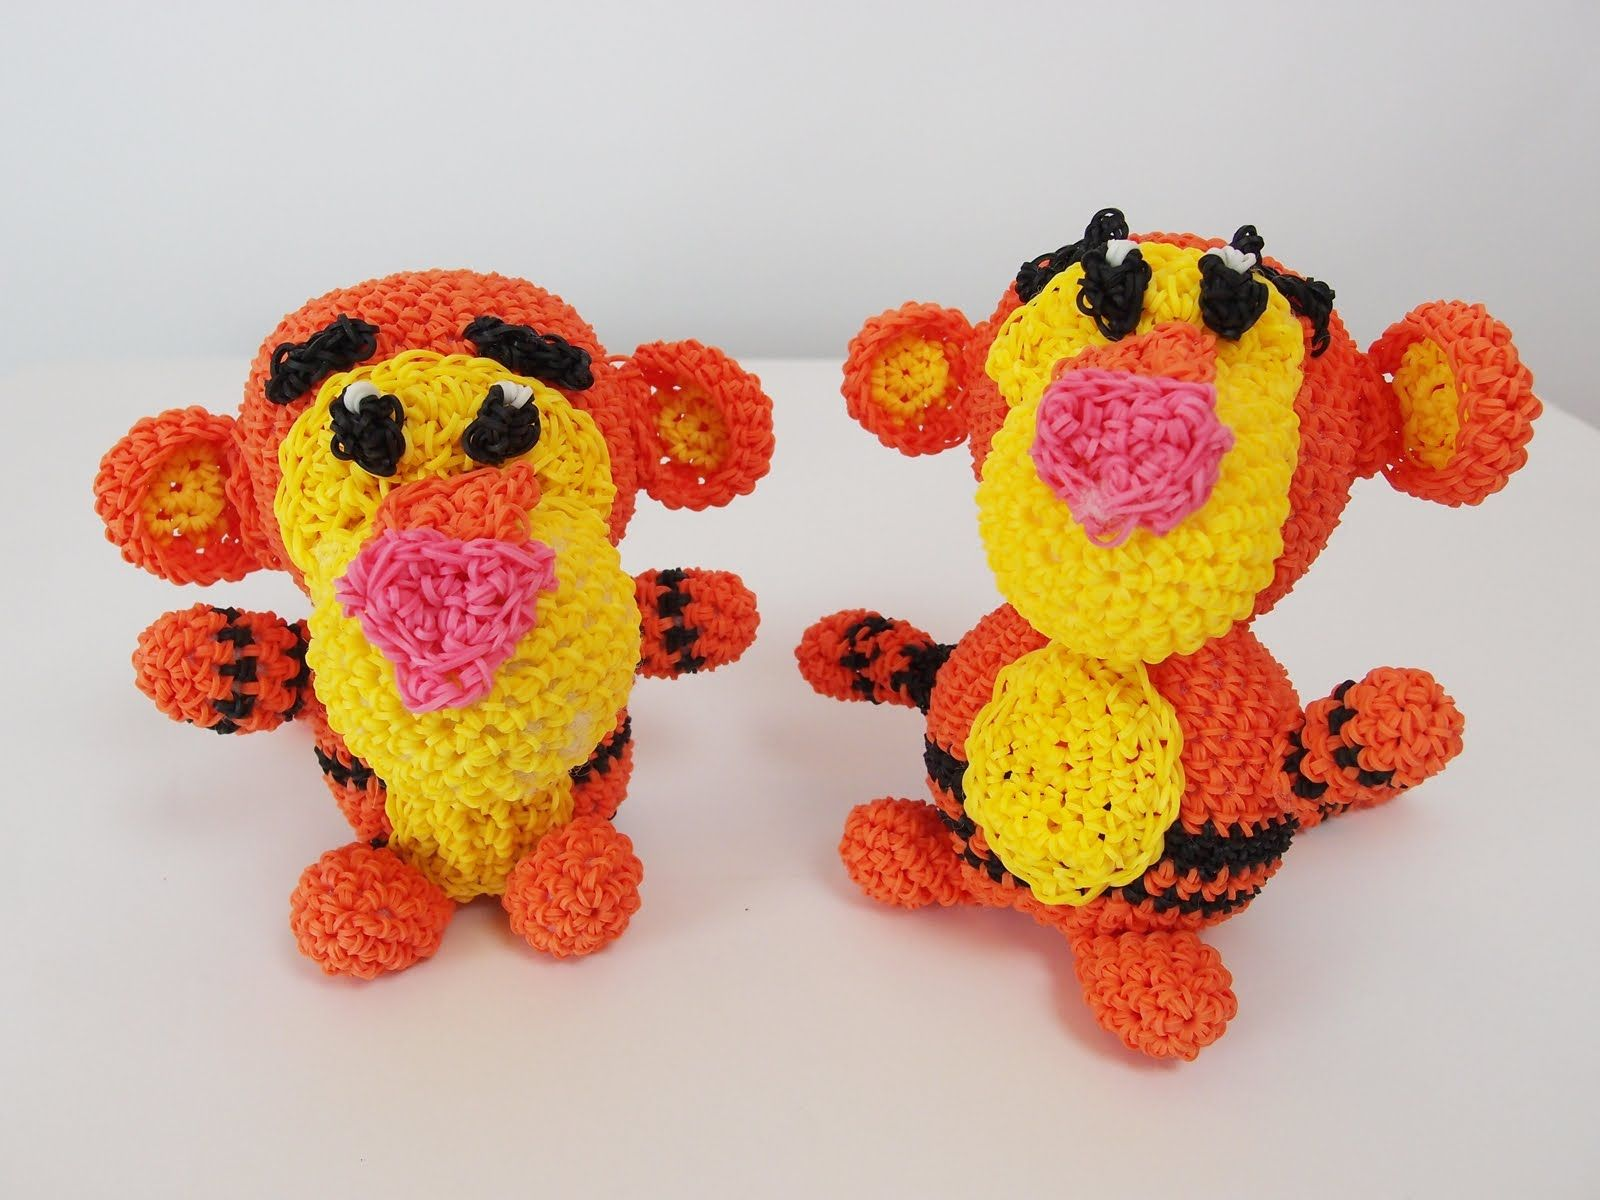 Amigurumi Loom Patterns : Tigger the tiger from winnie the pooh rainbow loom bands amigurumi